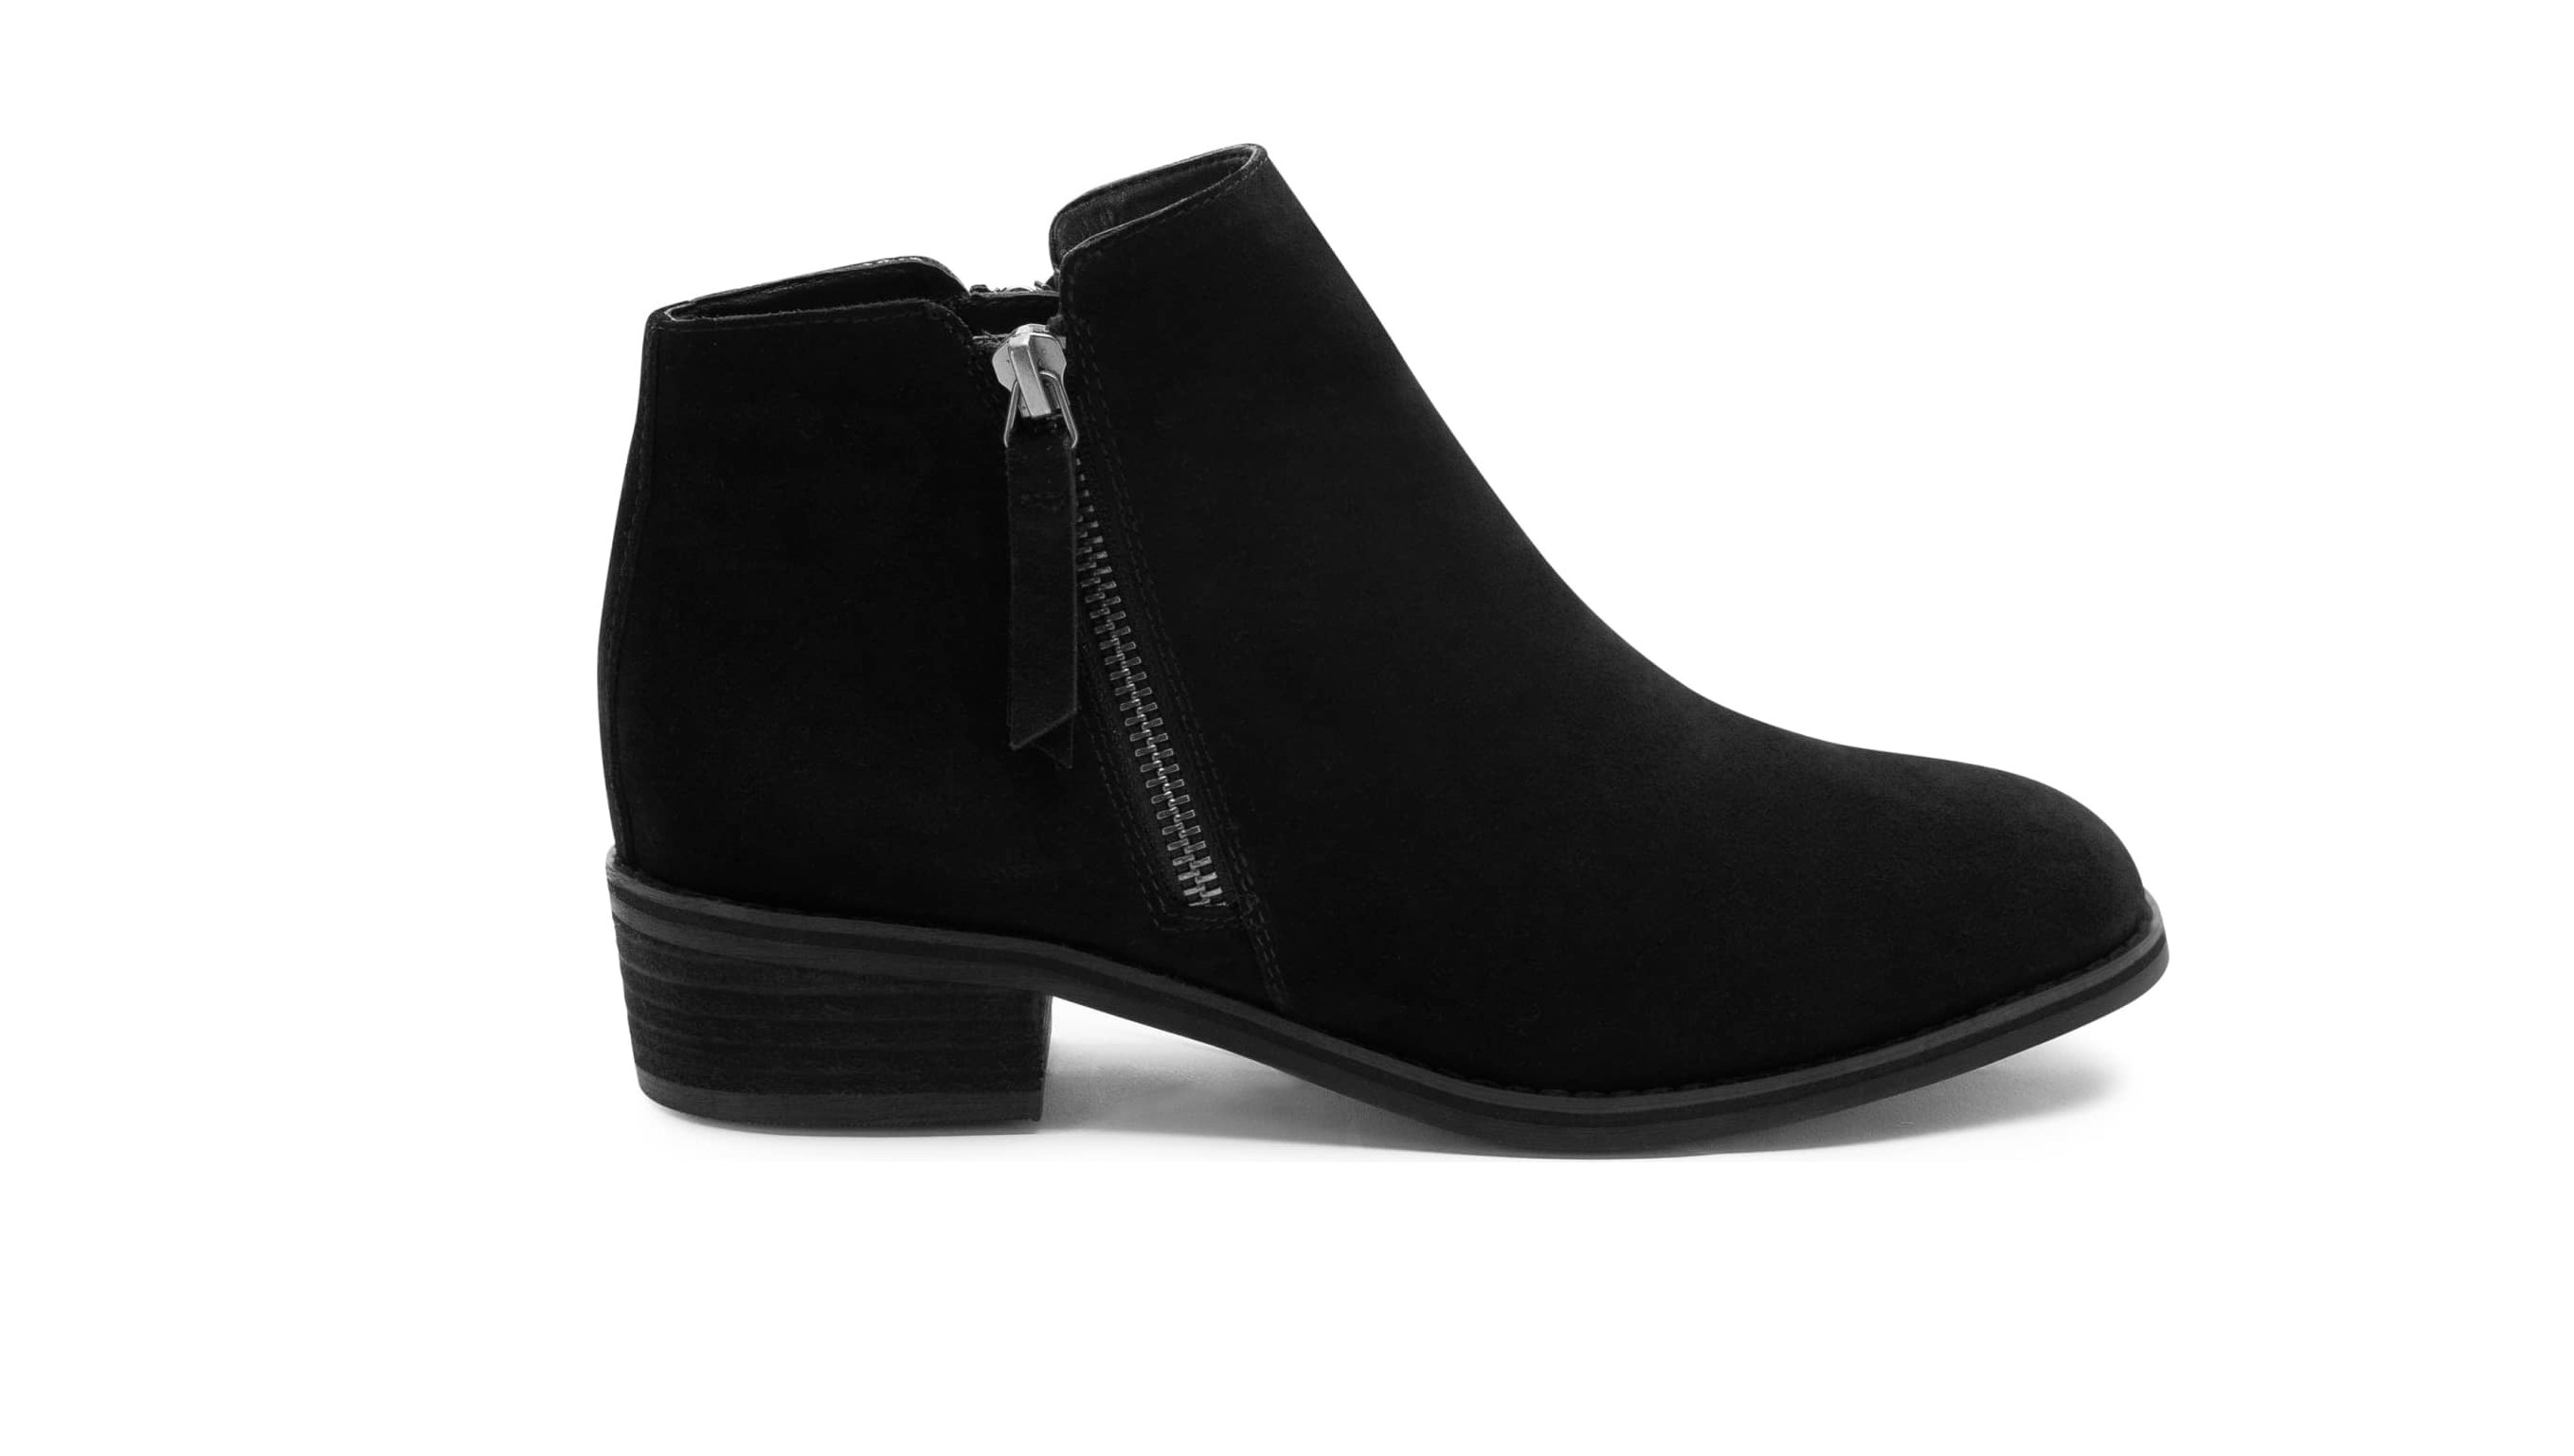 Nordstrom Holiday 2018 Blondo booties